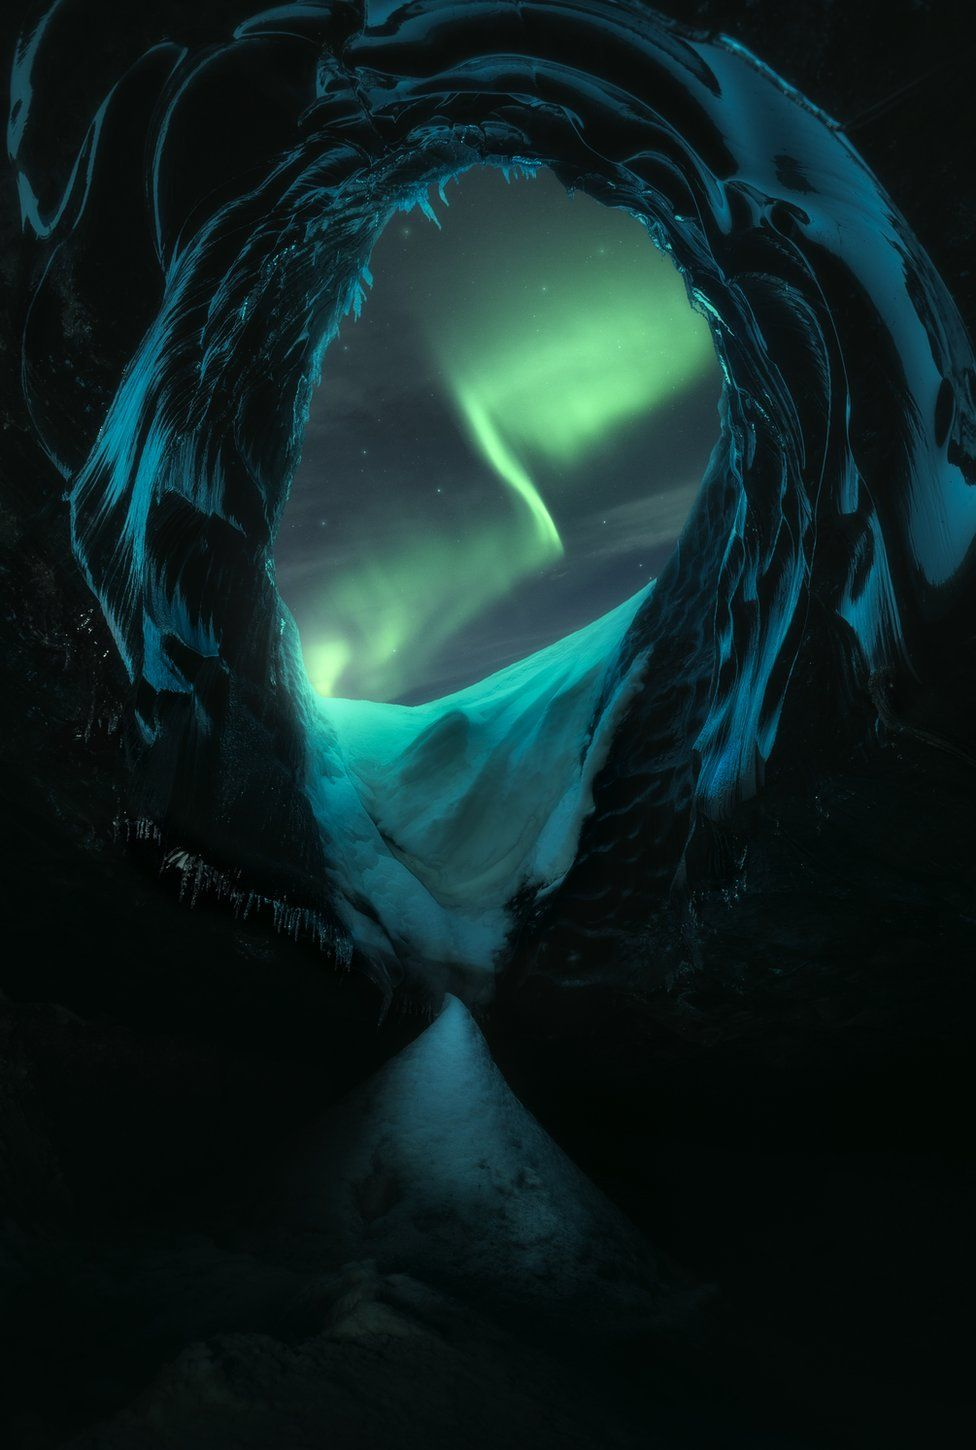 A view over glaciers with the Northern Lights in the sky